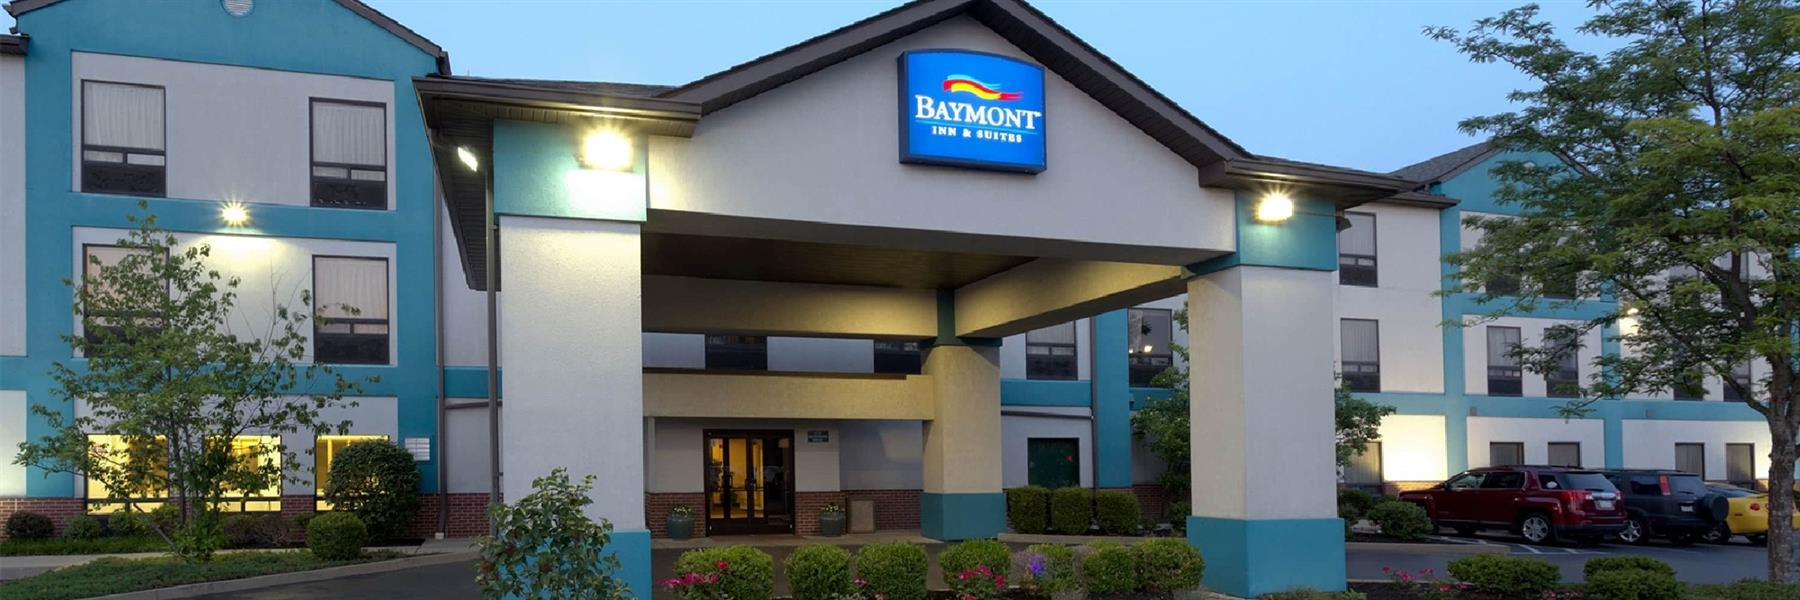 Baymont Inn And Suites Mason in Mason, Ohio